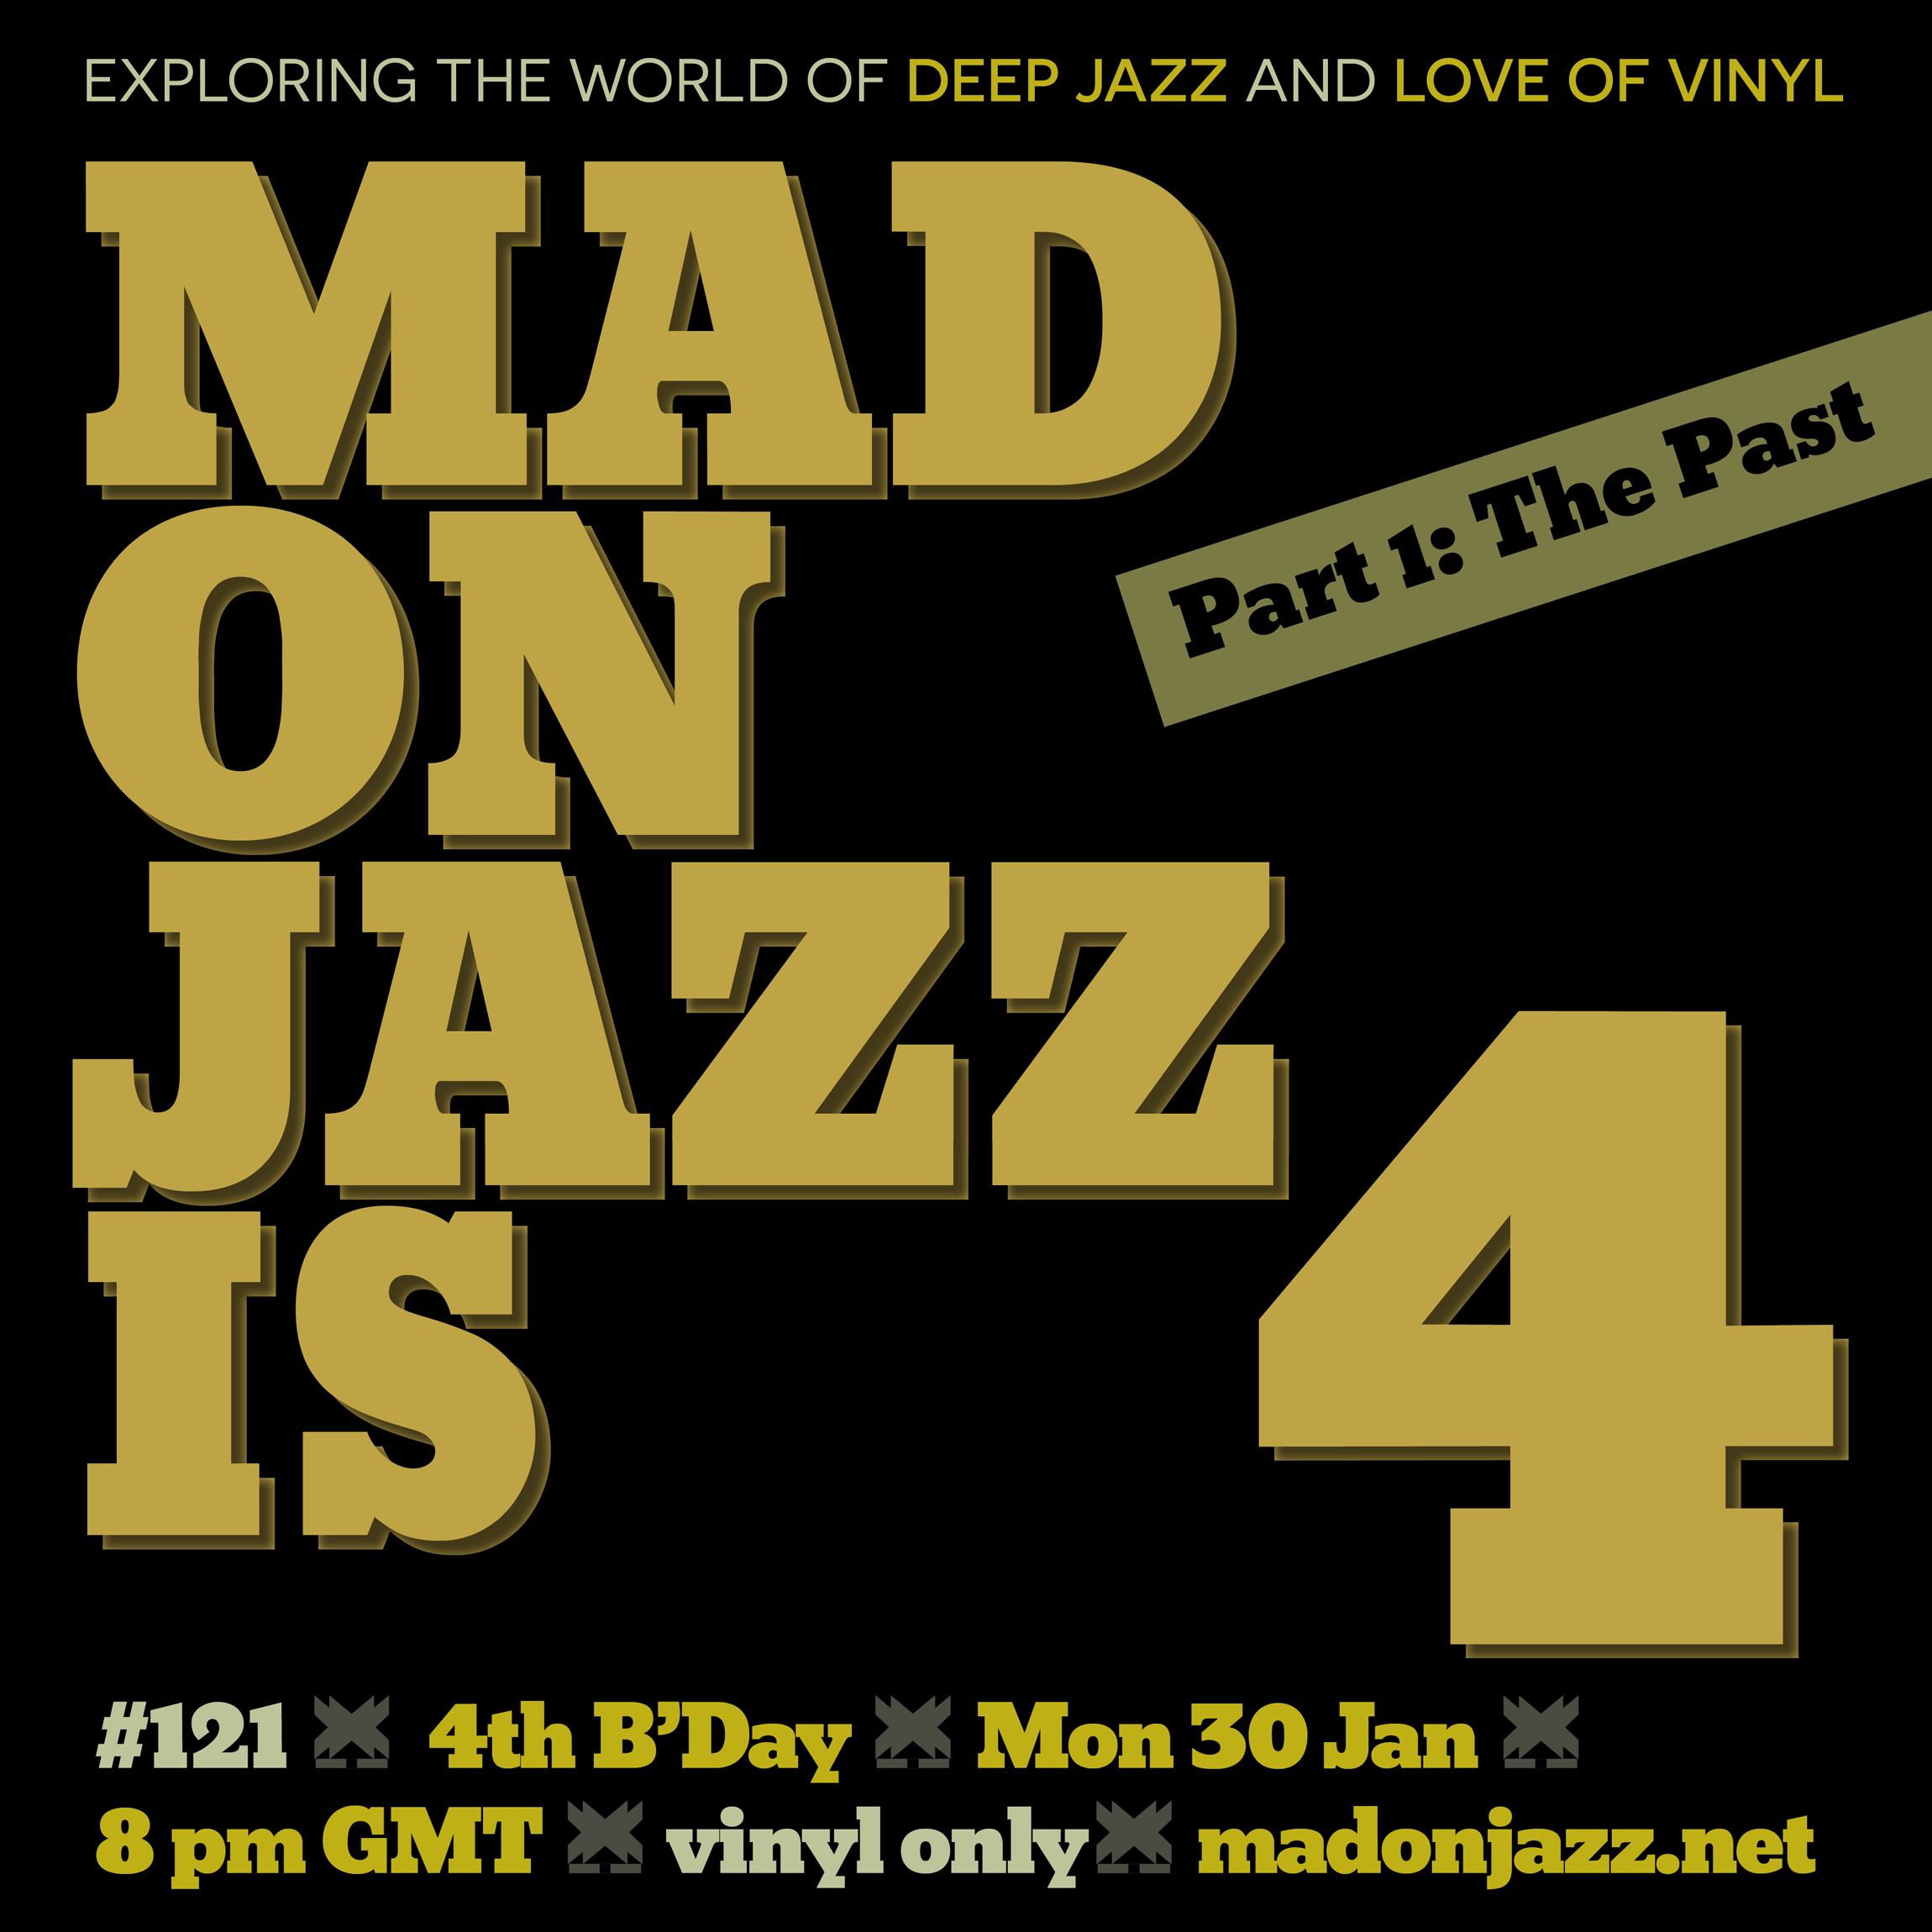 MADONJAZZ is 4! Celebrating 4 years of Deep Jazz and Love of vinyl